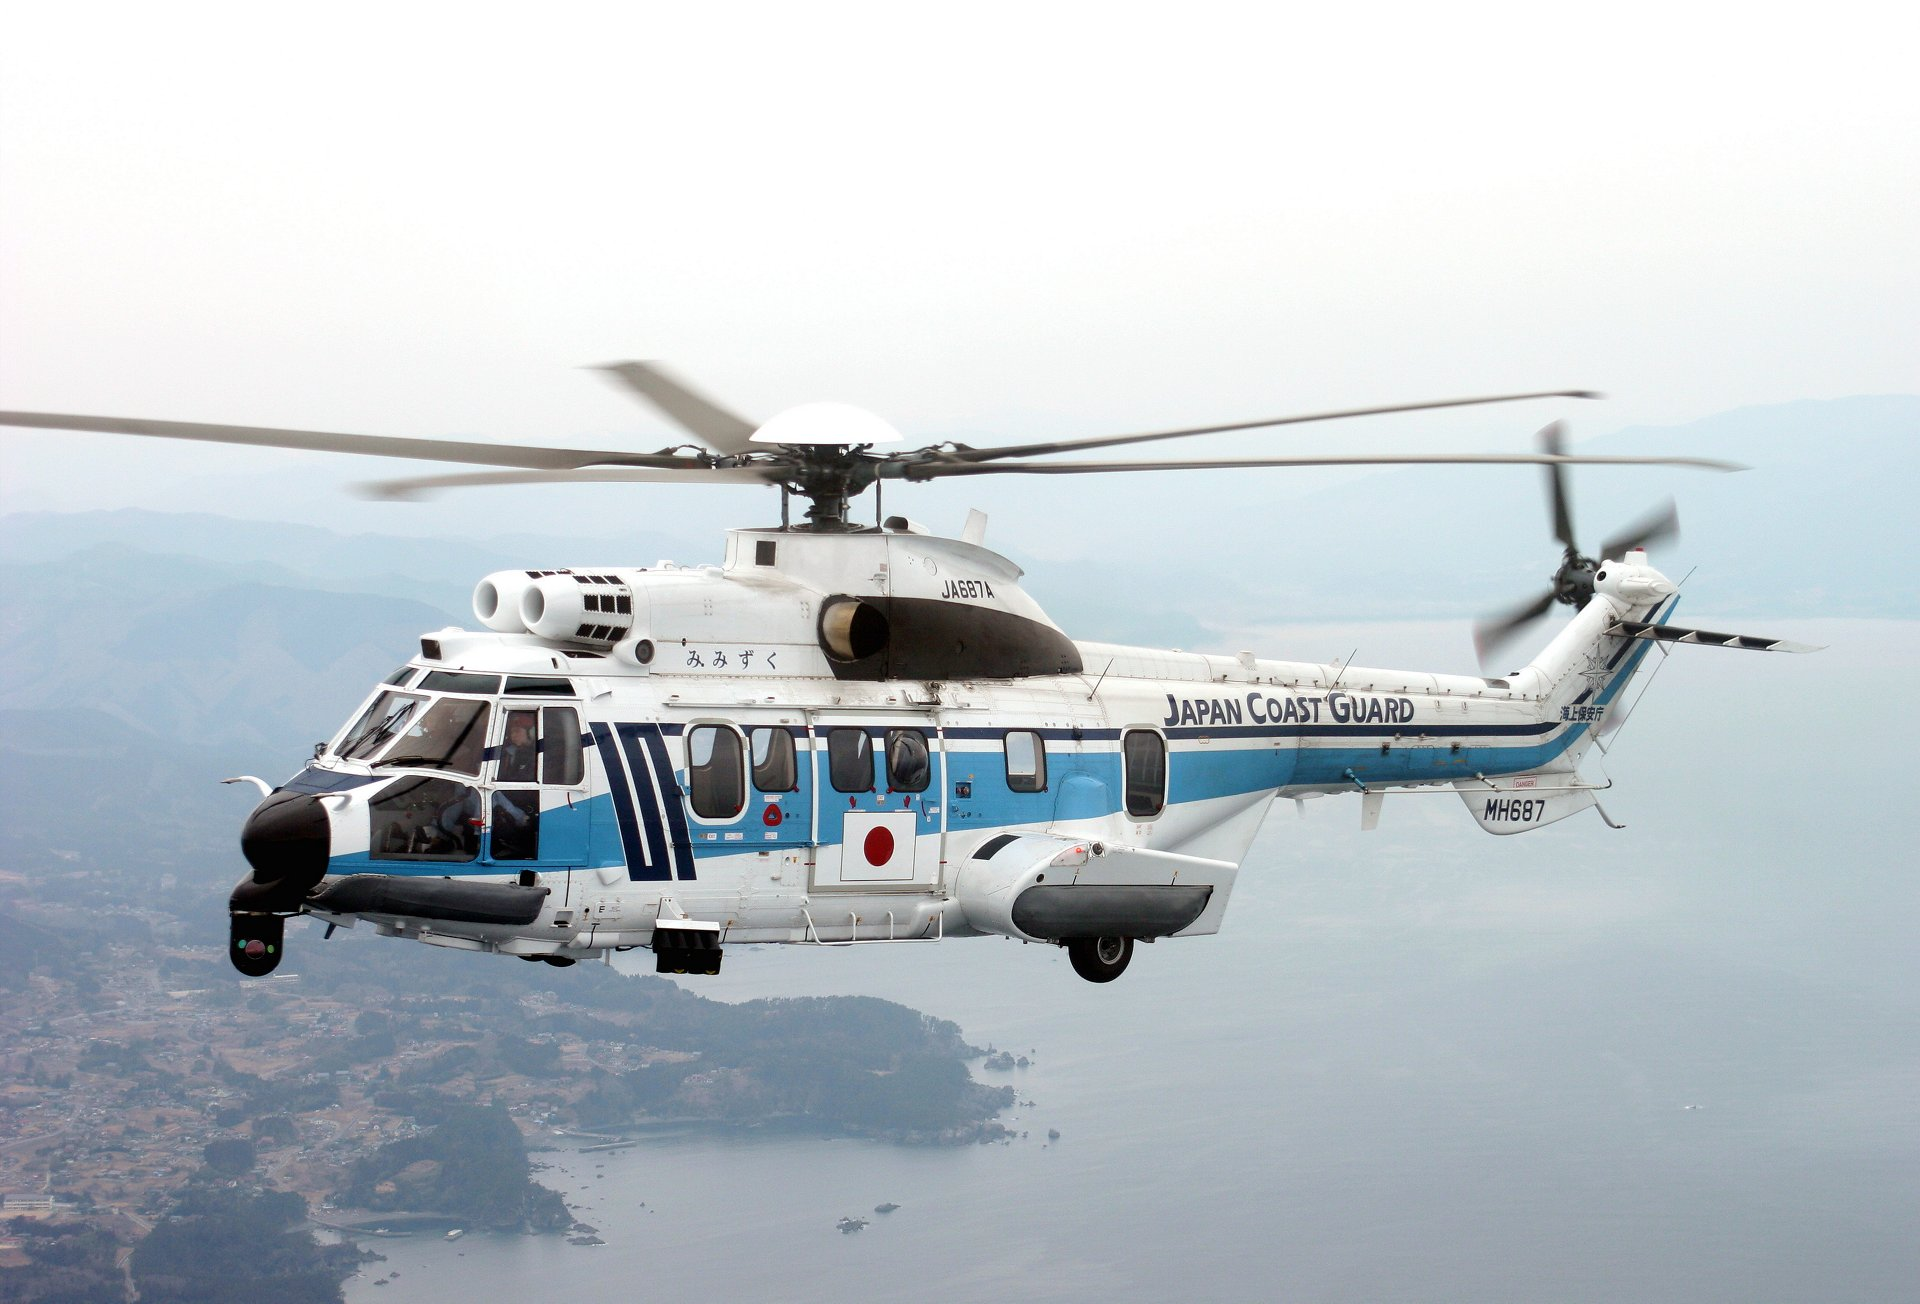 Japan Coast Guard bolsters fleet with additional H225 order